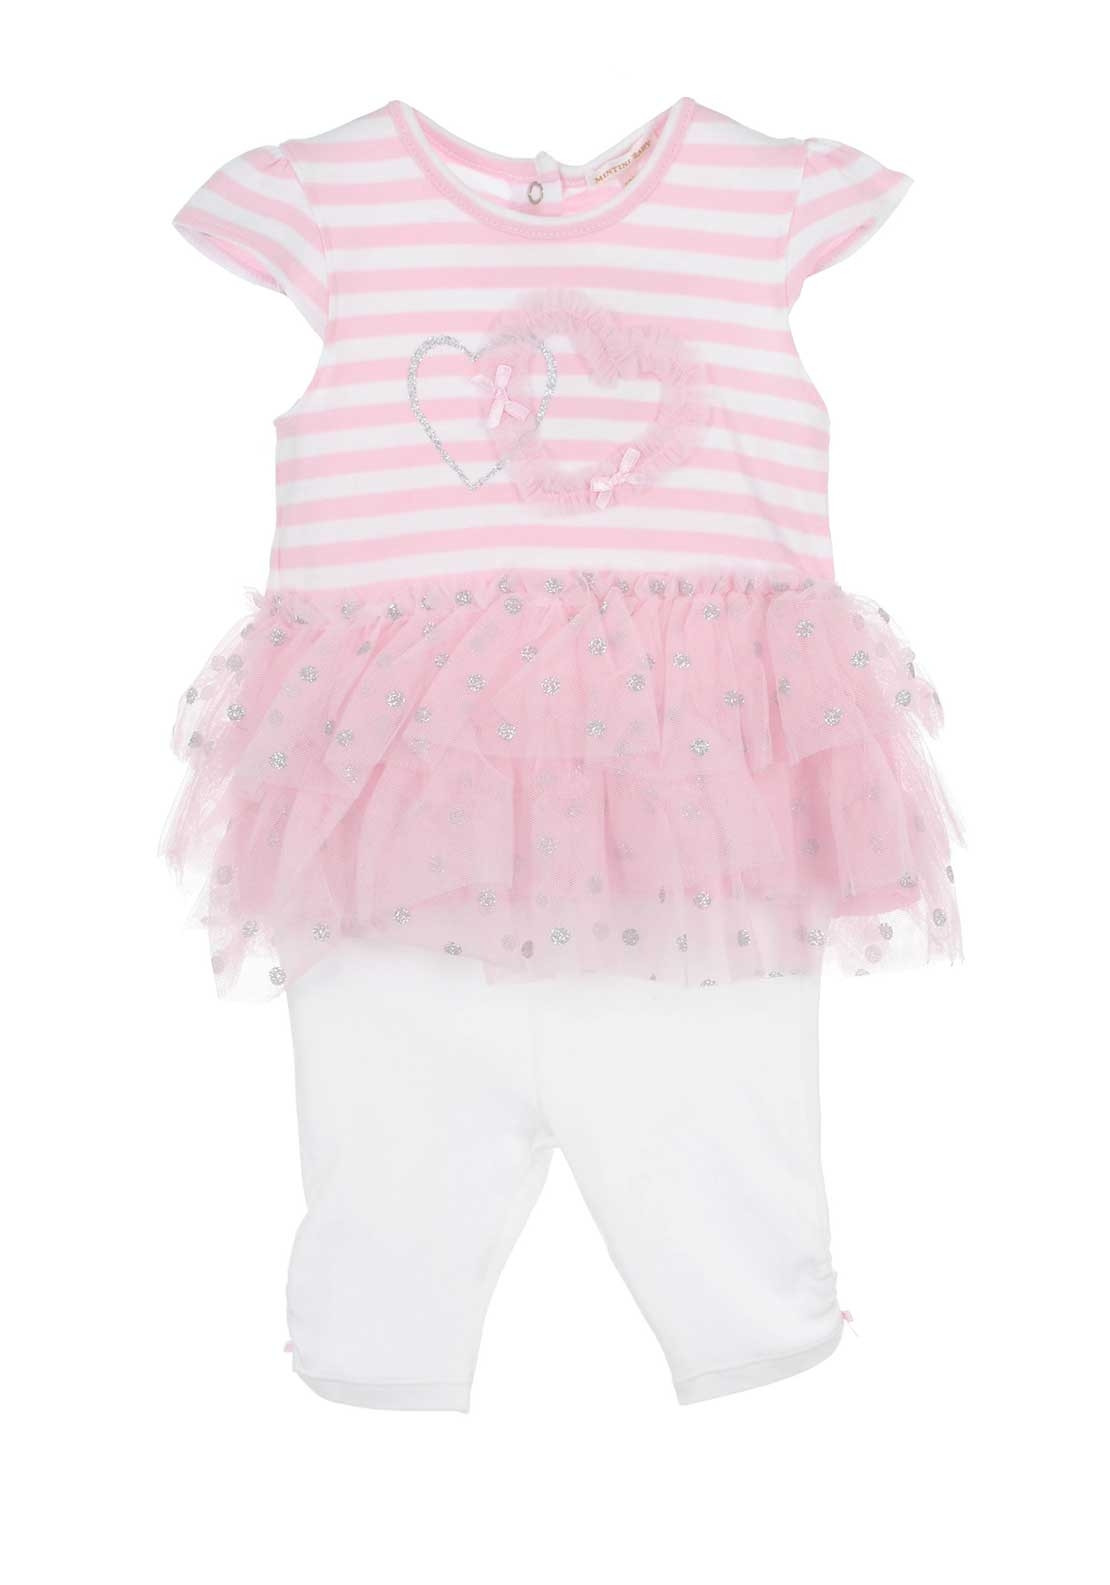 0d83d8cc7e65 Mintini Baby Girls Striped Tulle Dress and Leggings